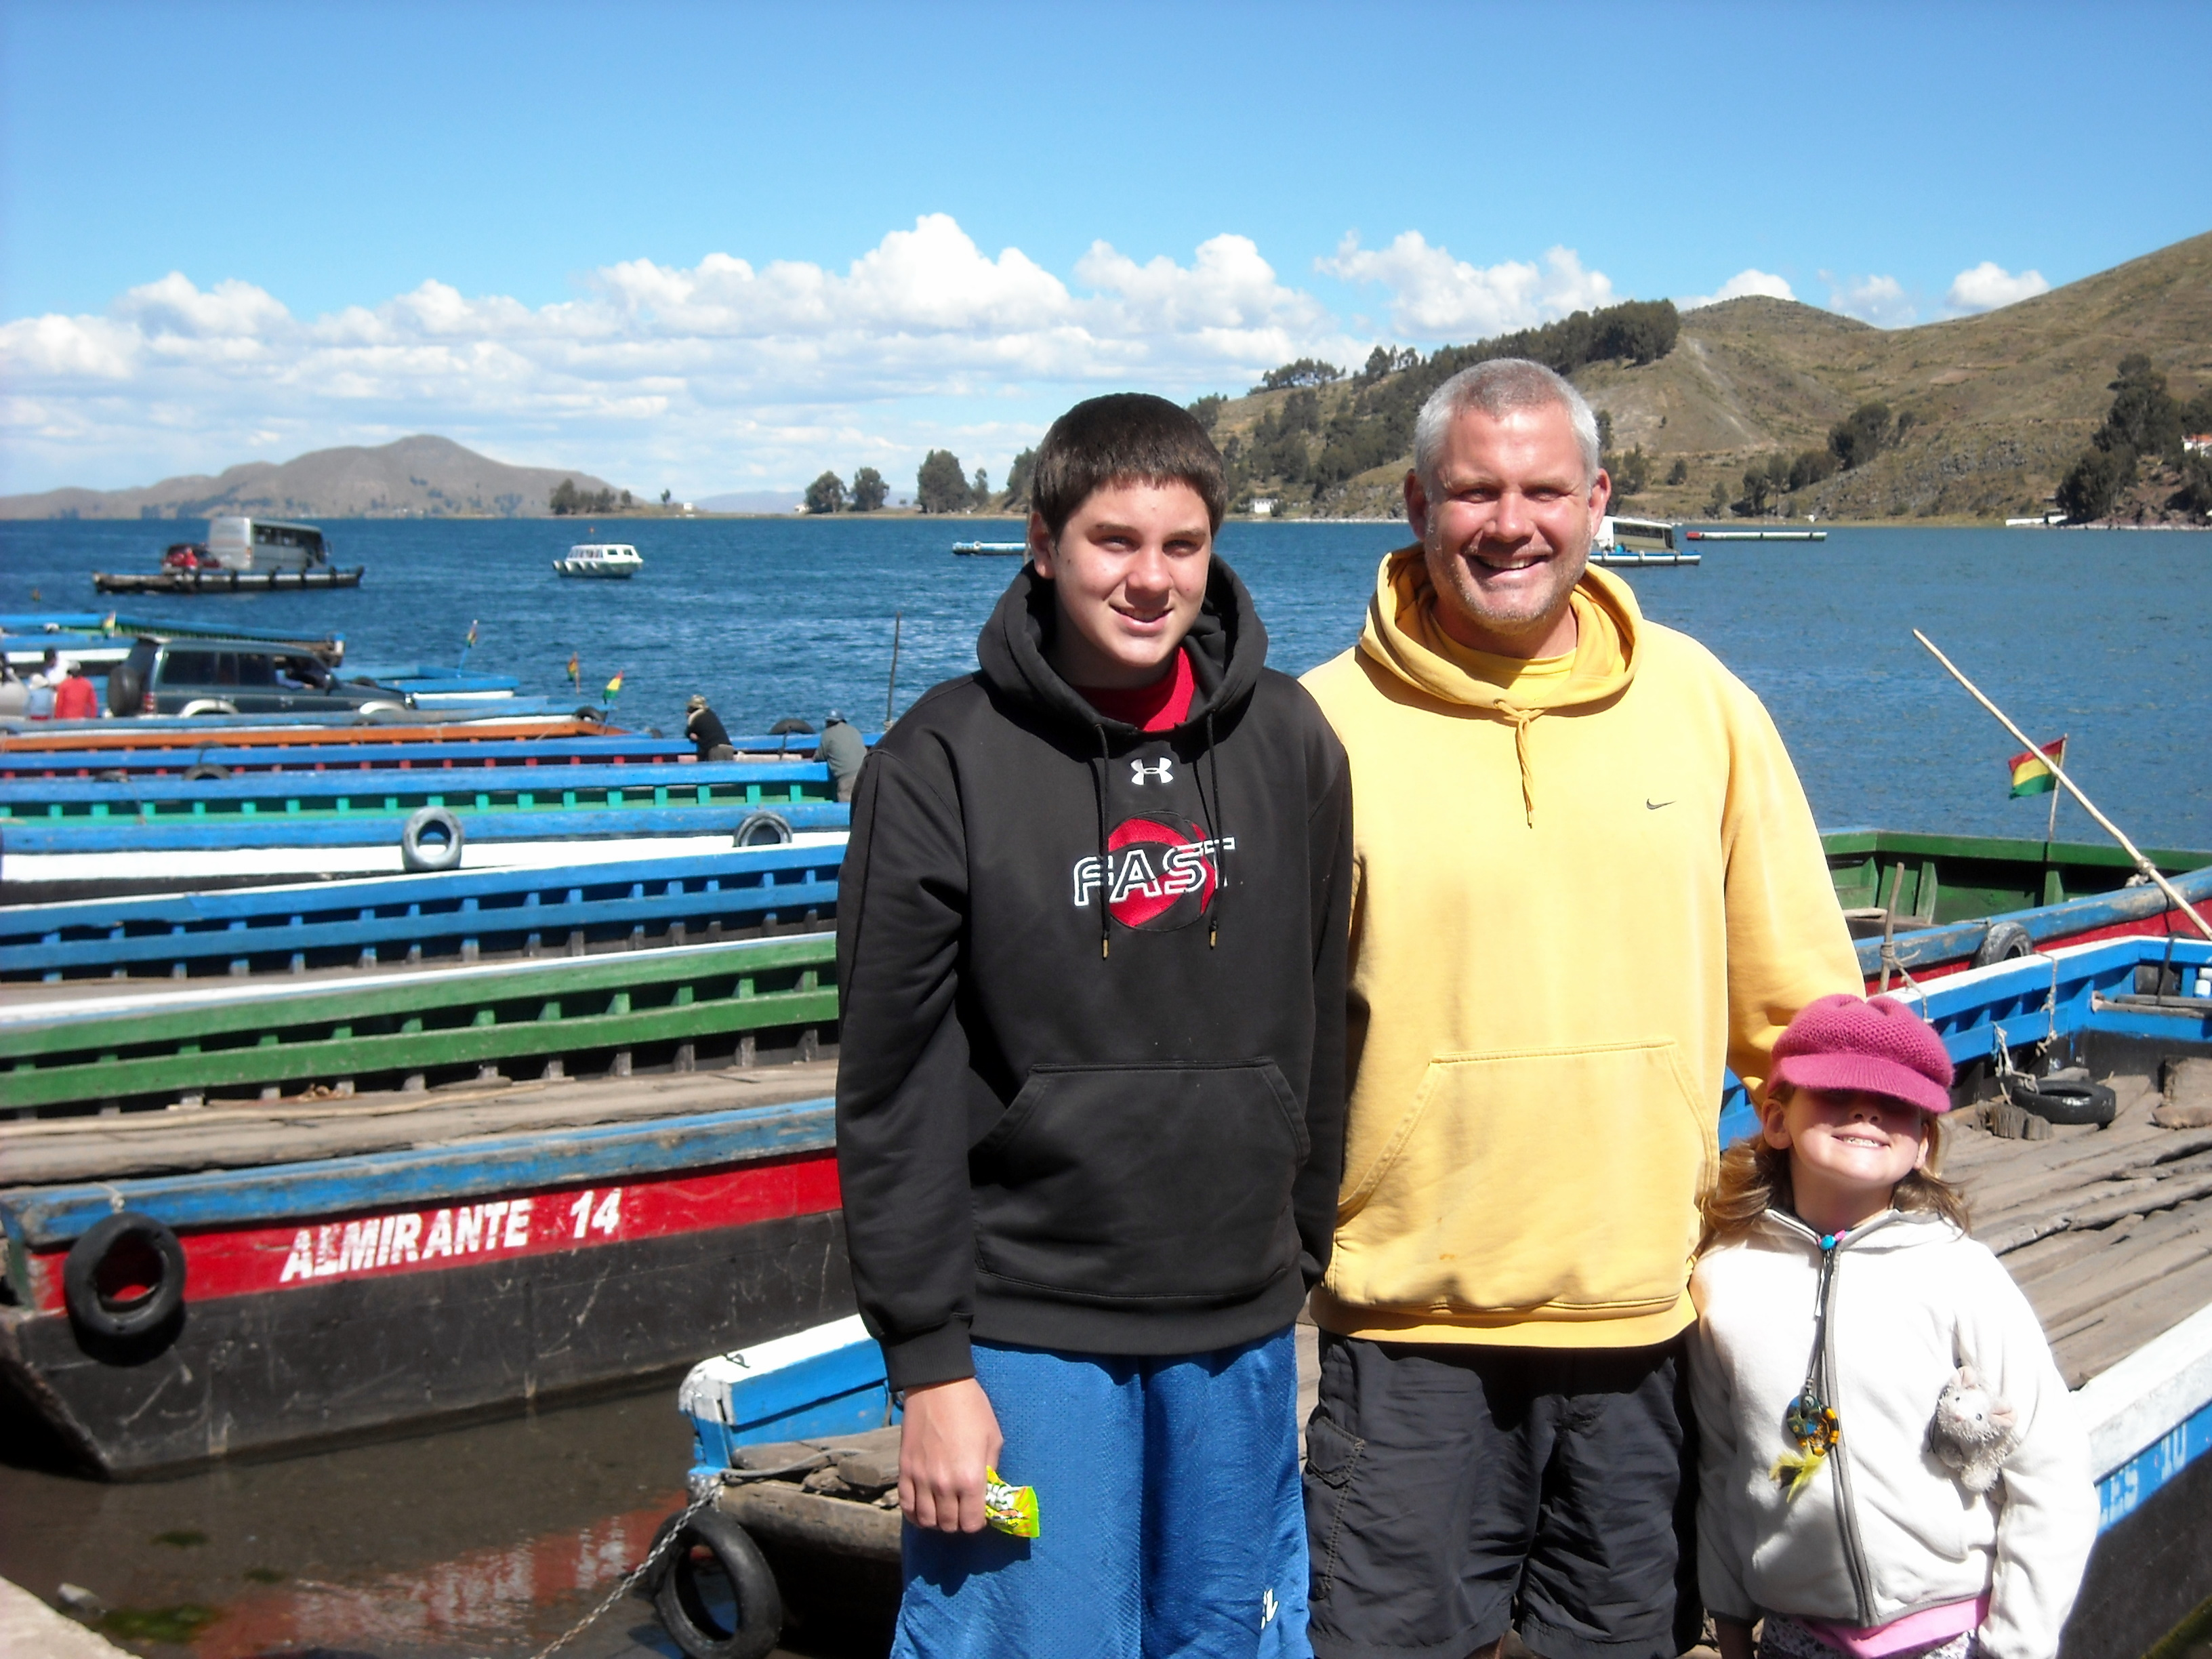 Sean, Grant, Gigi after our ferry boat ride on Lake Titicaca